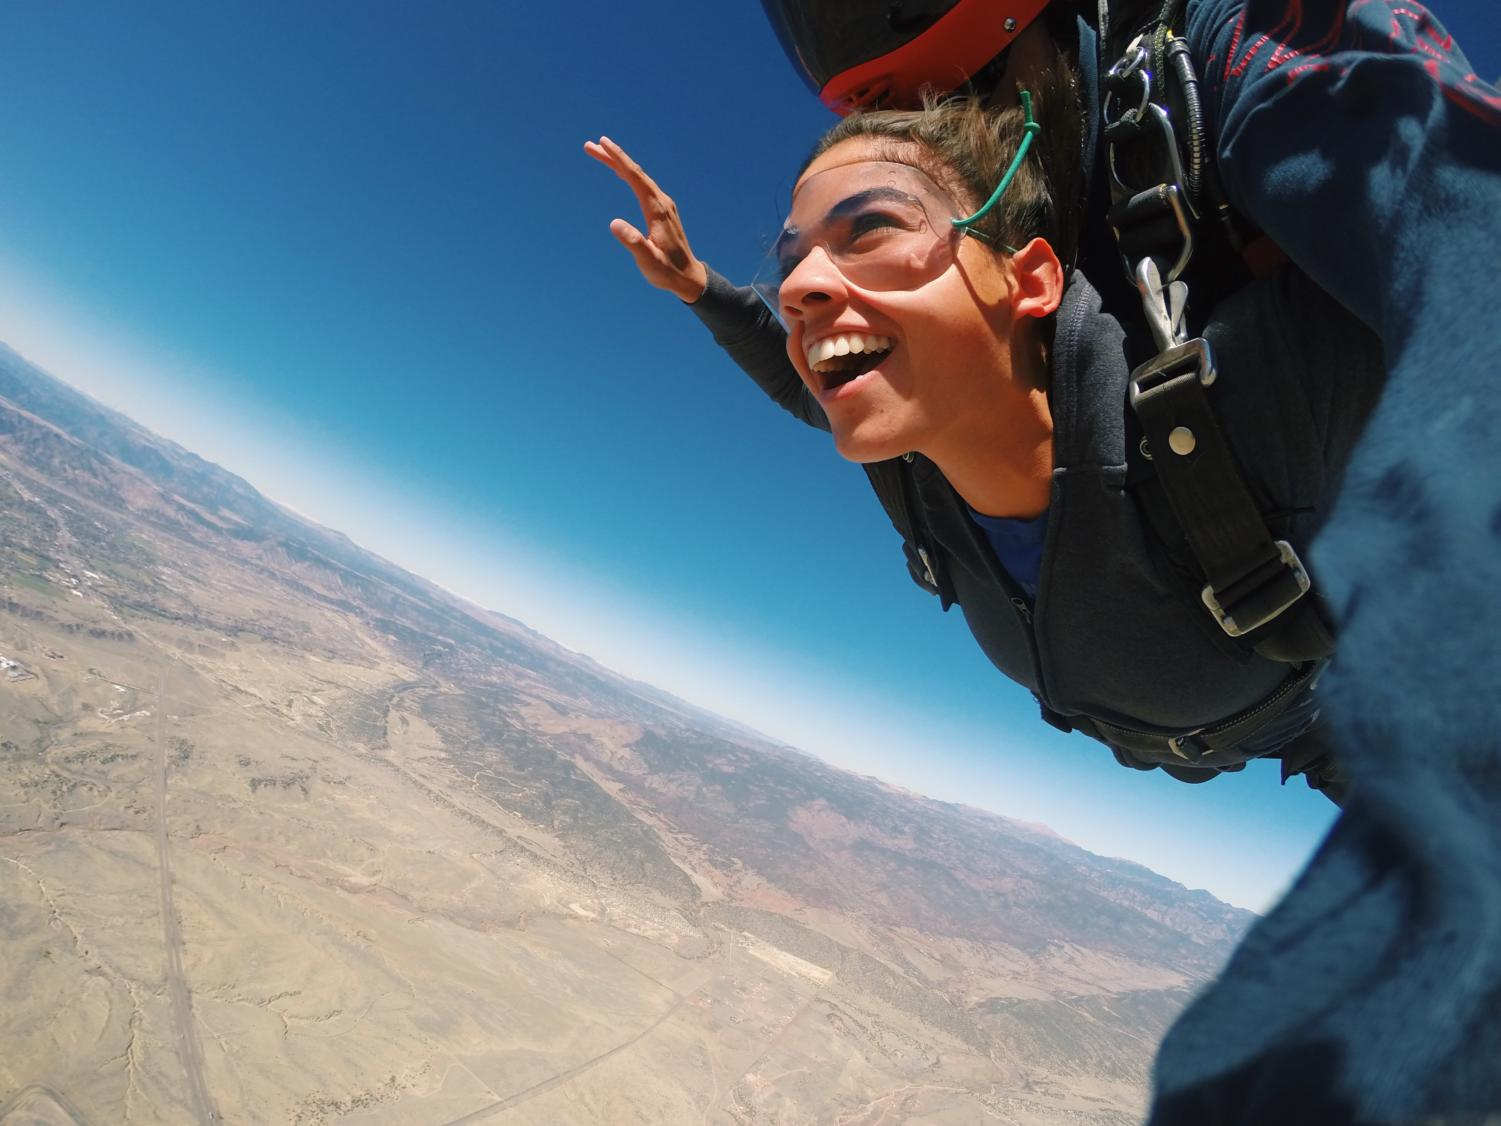 Senior Lily Boice goes on a skydiving adventure.